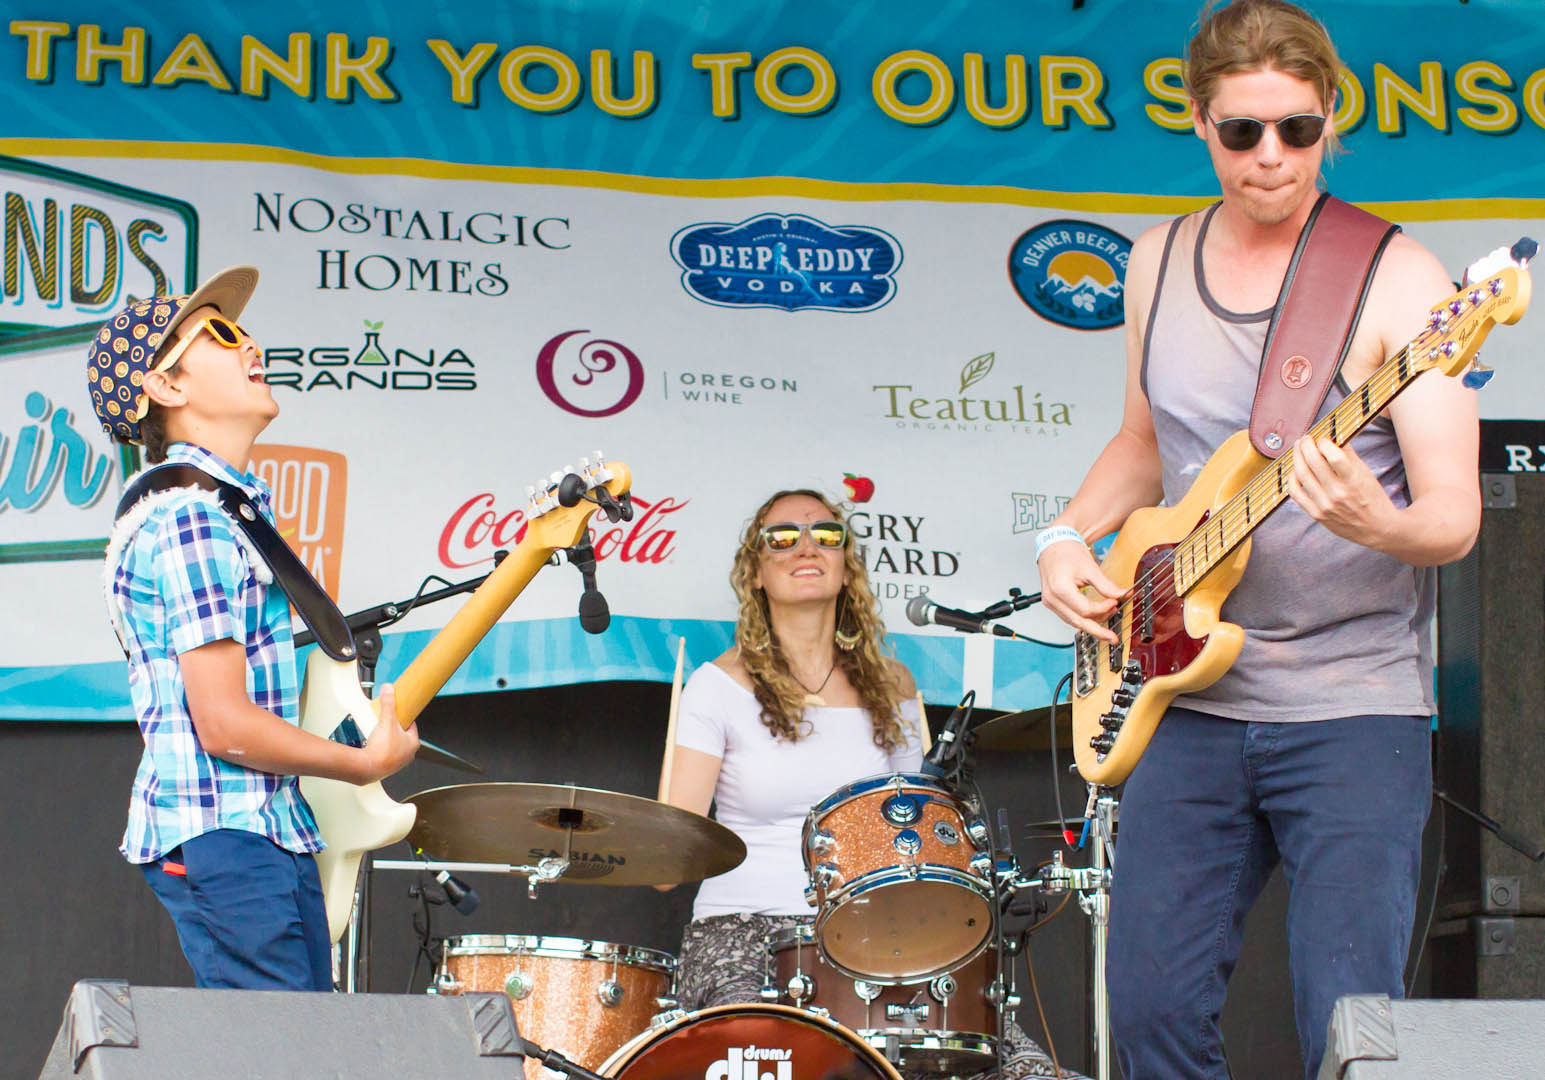 The Dylan Miles Experience rocks the Highlands Street Fair in Denver